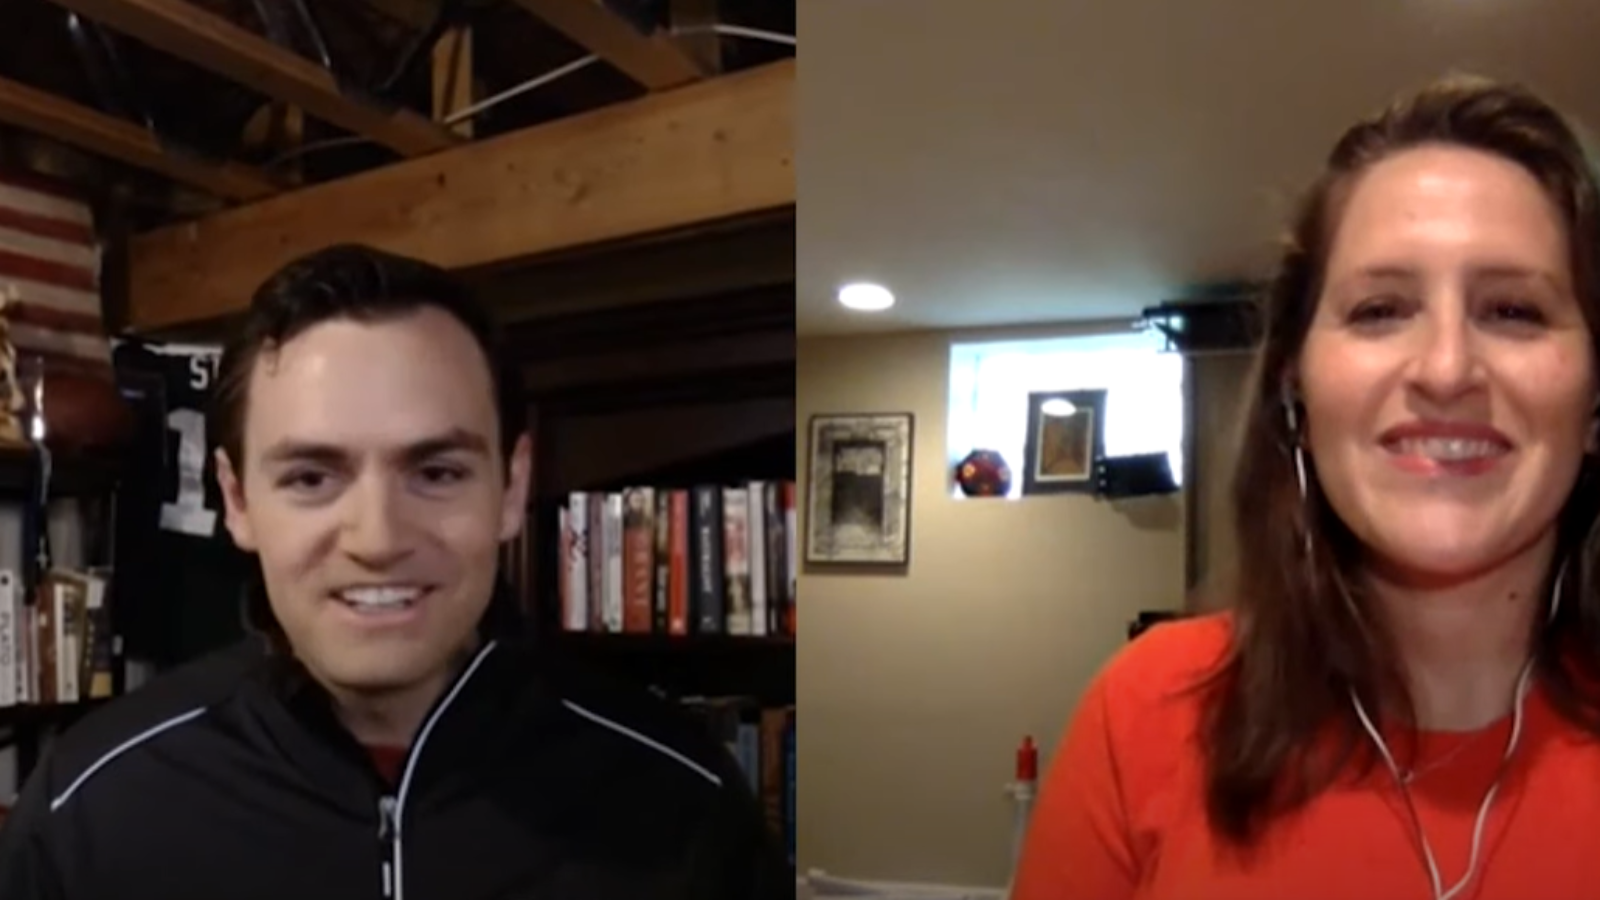 Side-by-side images of Mike Gallagher and Oriana Mastro on a video call